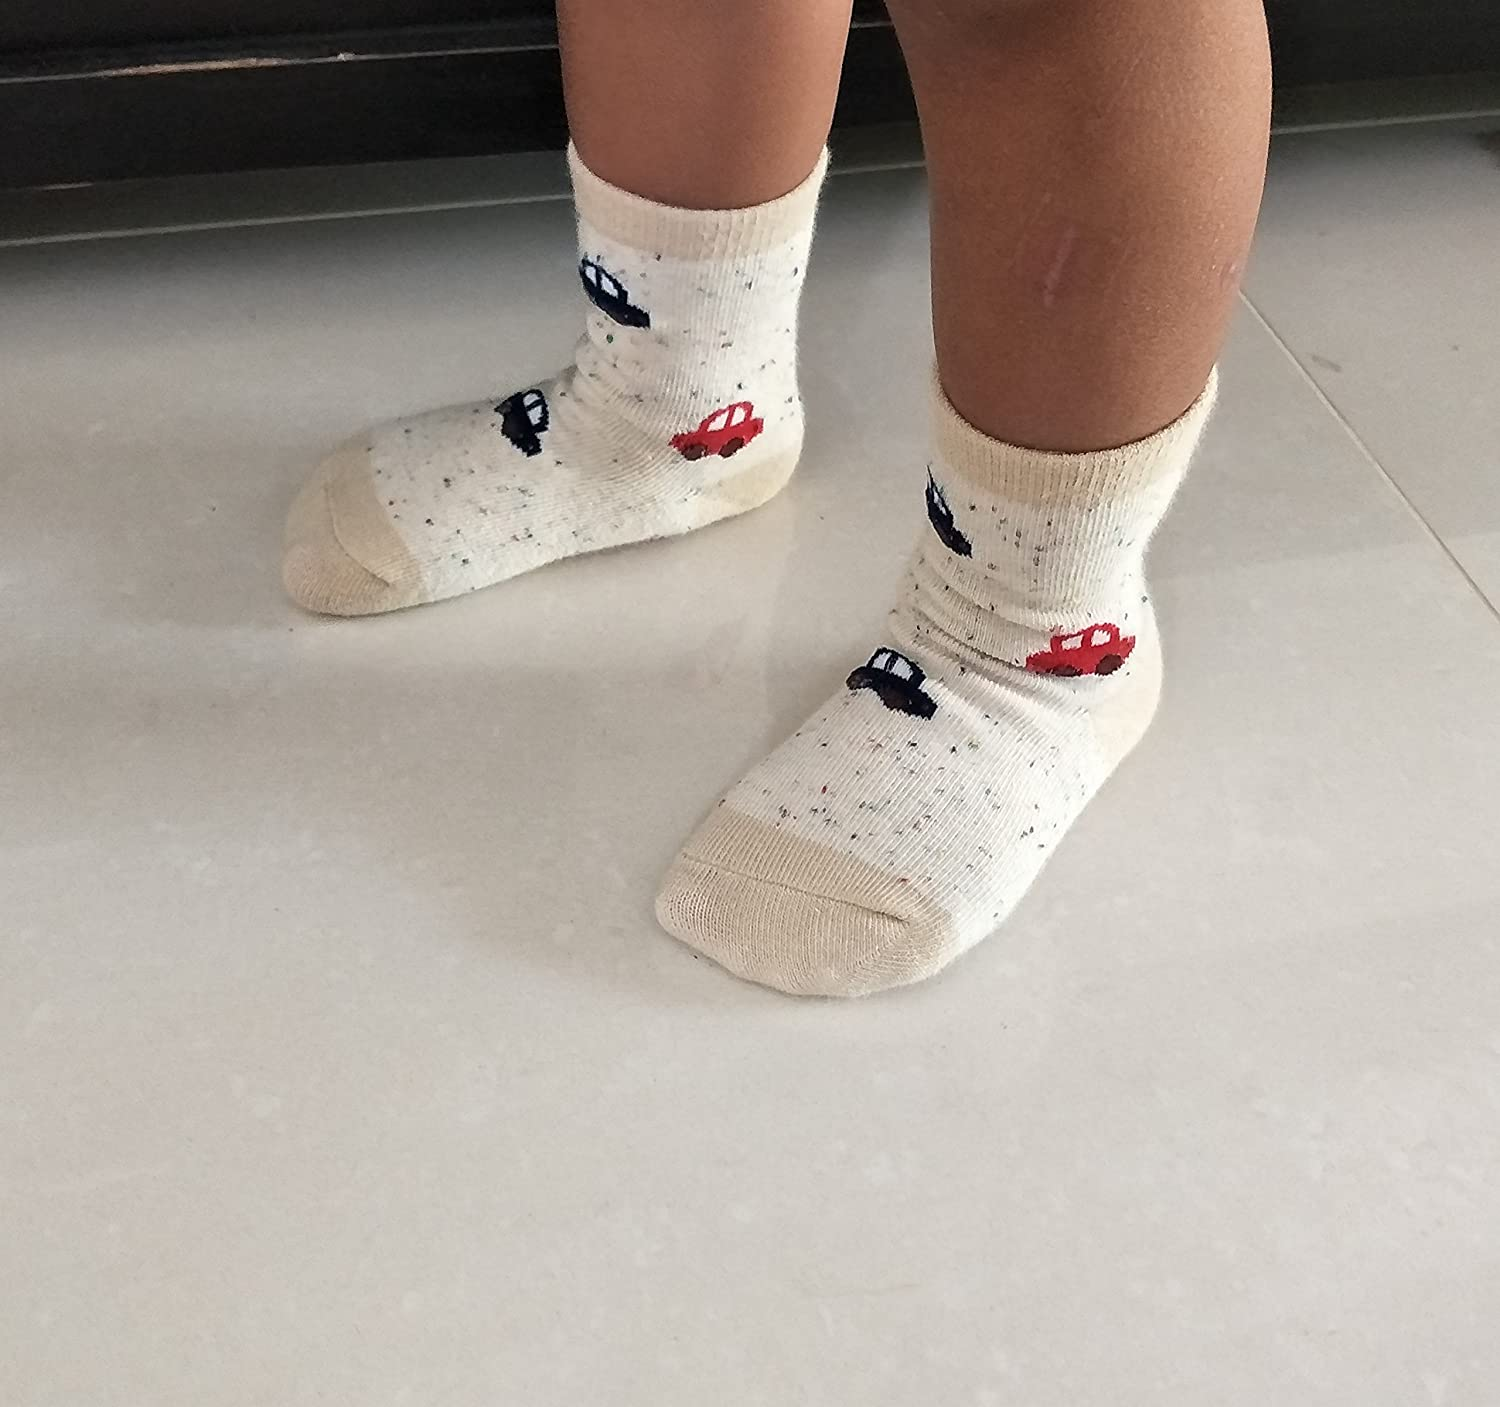 RATIVE RB-71112 Non Skid Anti Slip Crew Socks With Grips For Baby Toddlers Boys